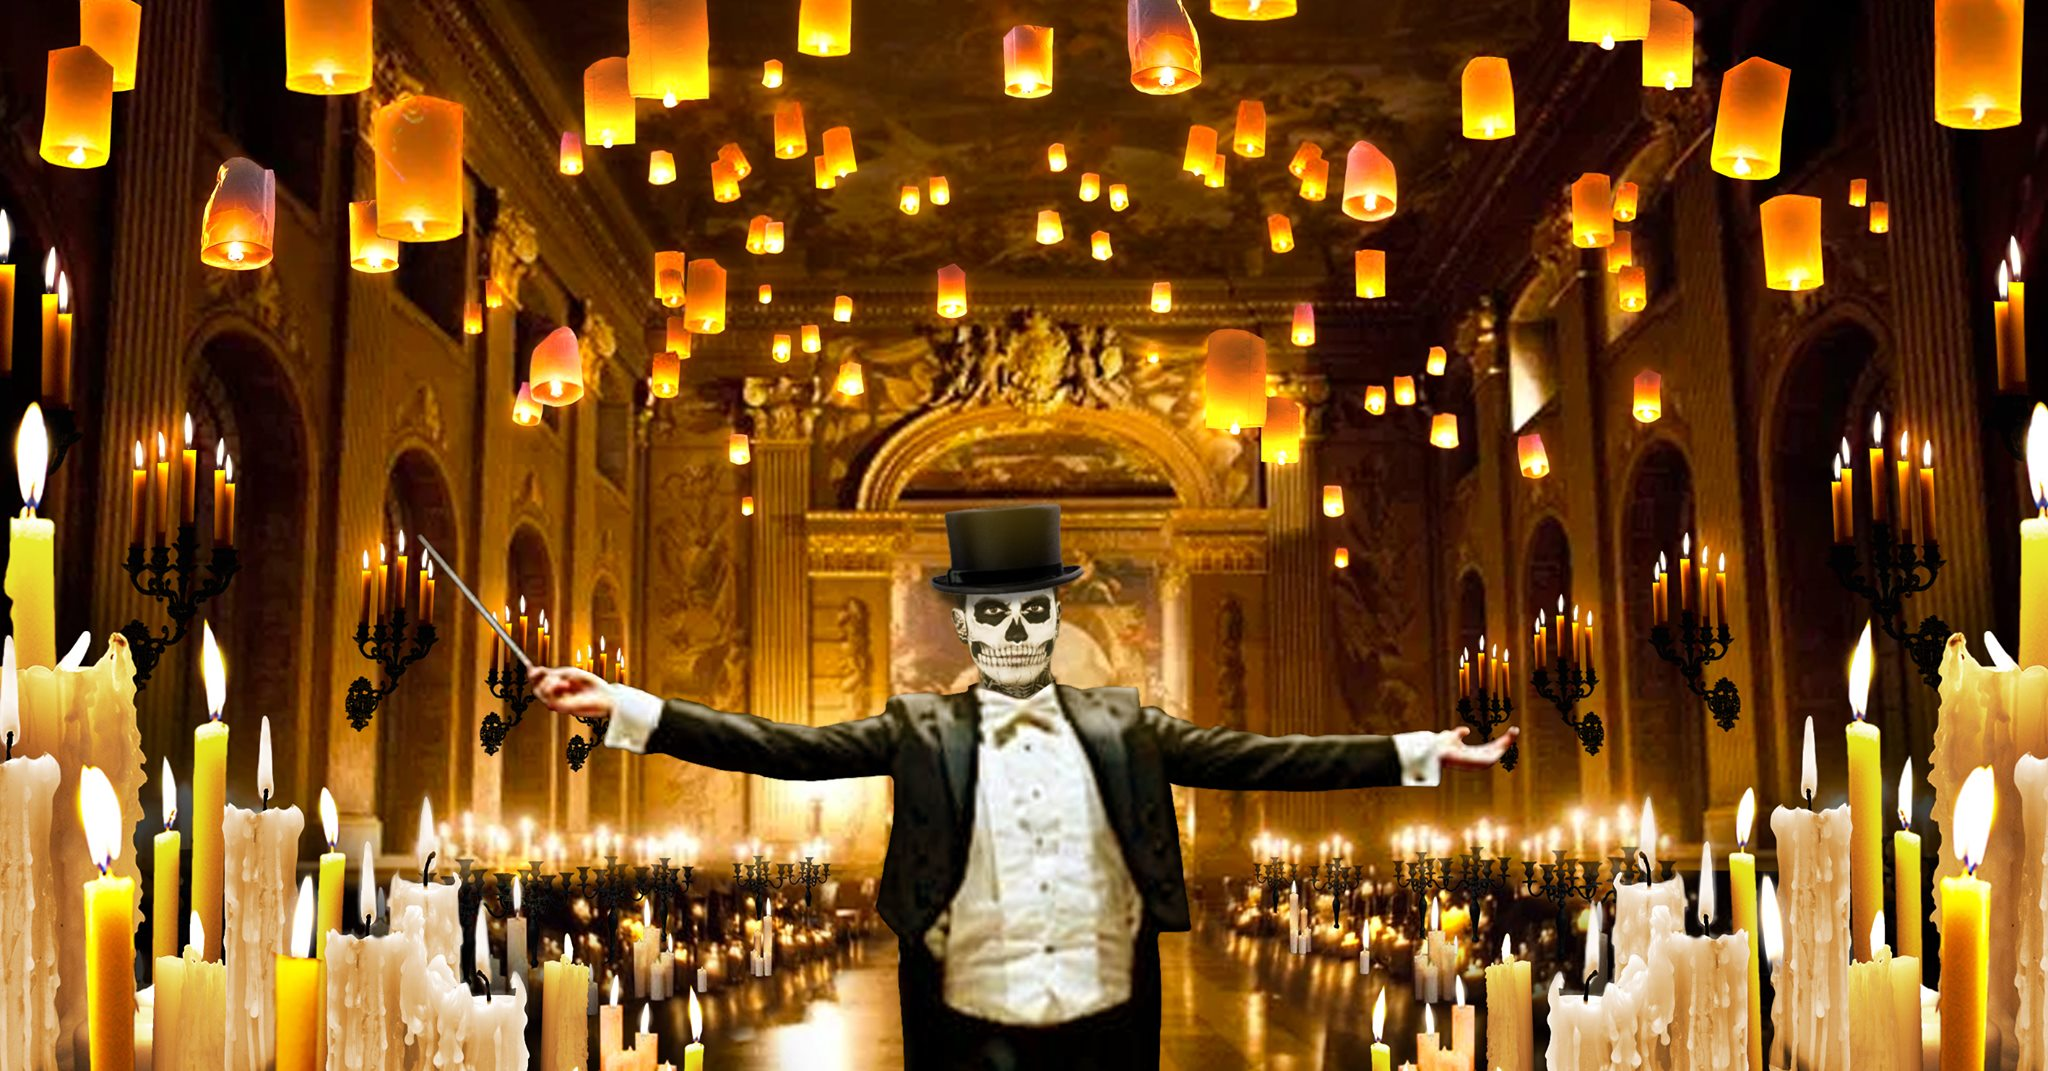 The Rock Orchestra By Candlelight: Colchester